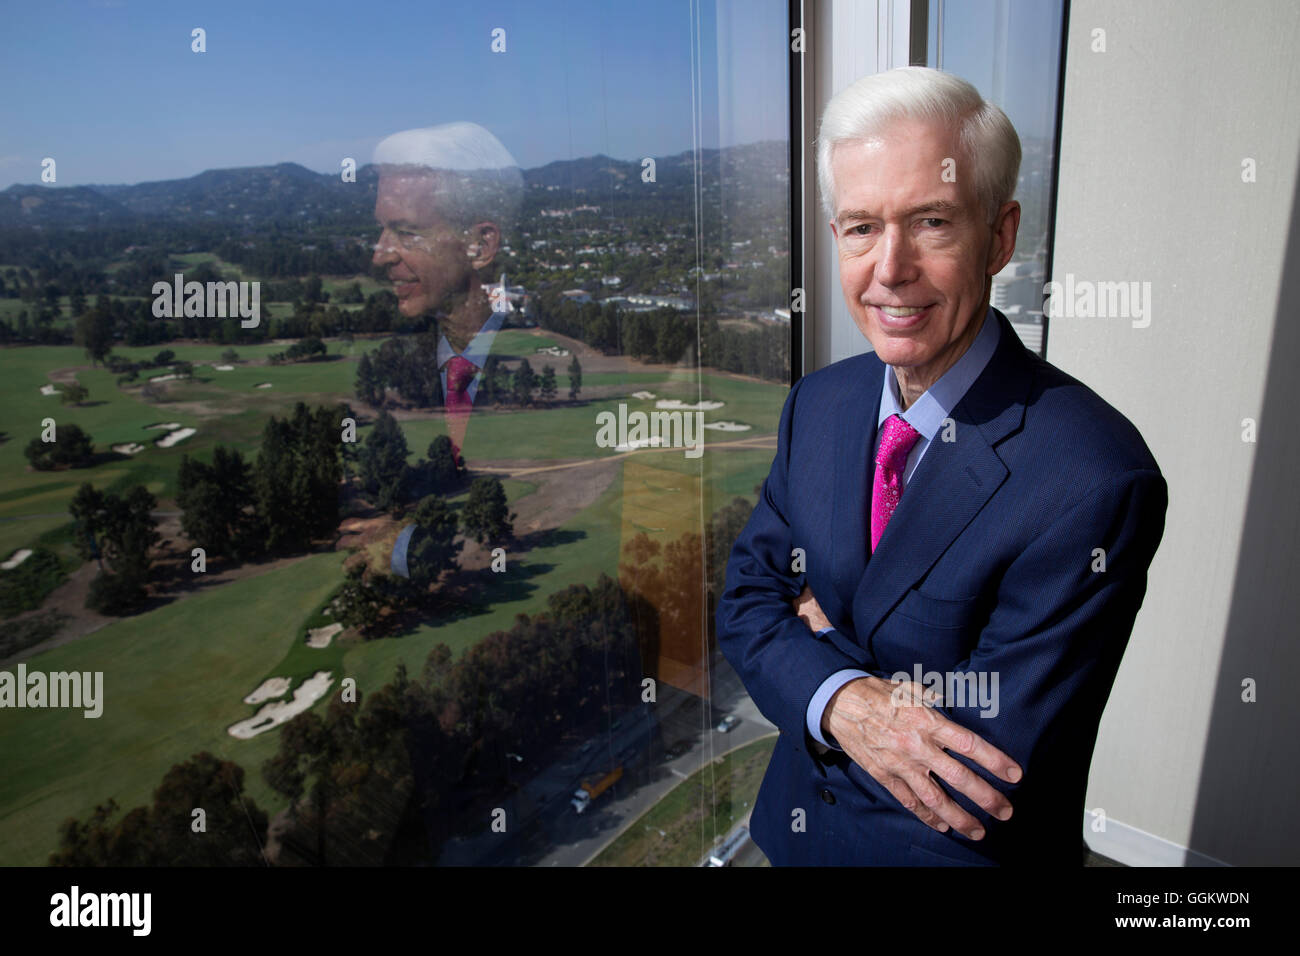 California Governor Gray Davis poses for a portrait in his office at Loeb & Loeb in Century City, Los Angeles - Stock Image